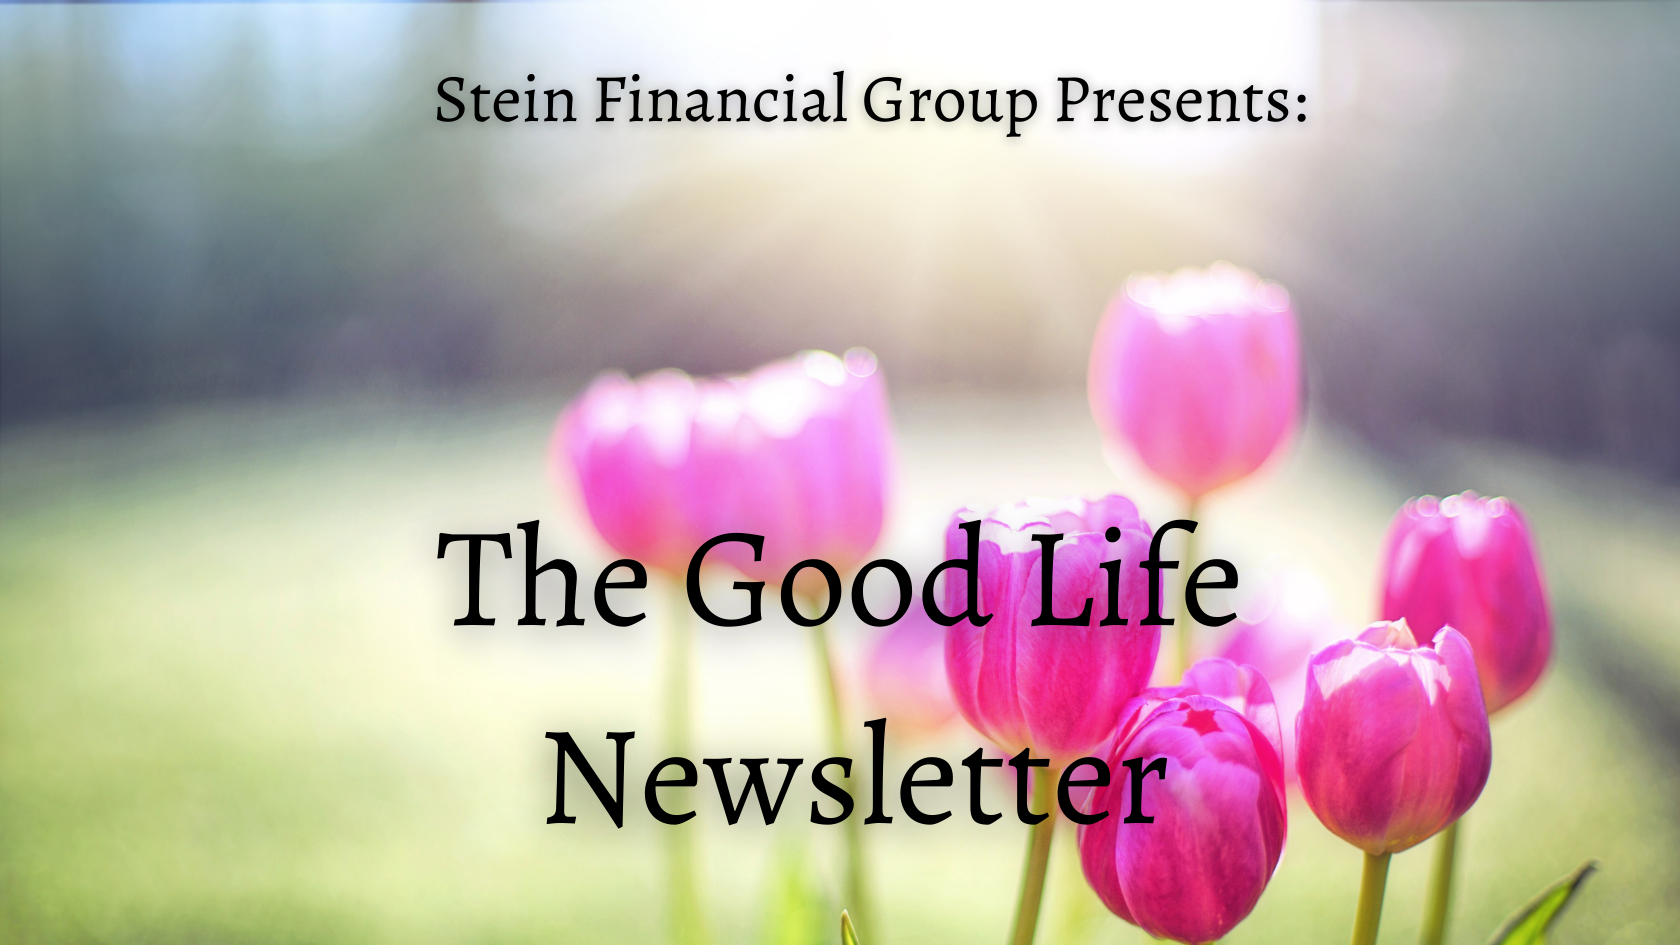 The Good Life Newsletter - Decline in Stocks and Bond Yields Thumbnail